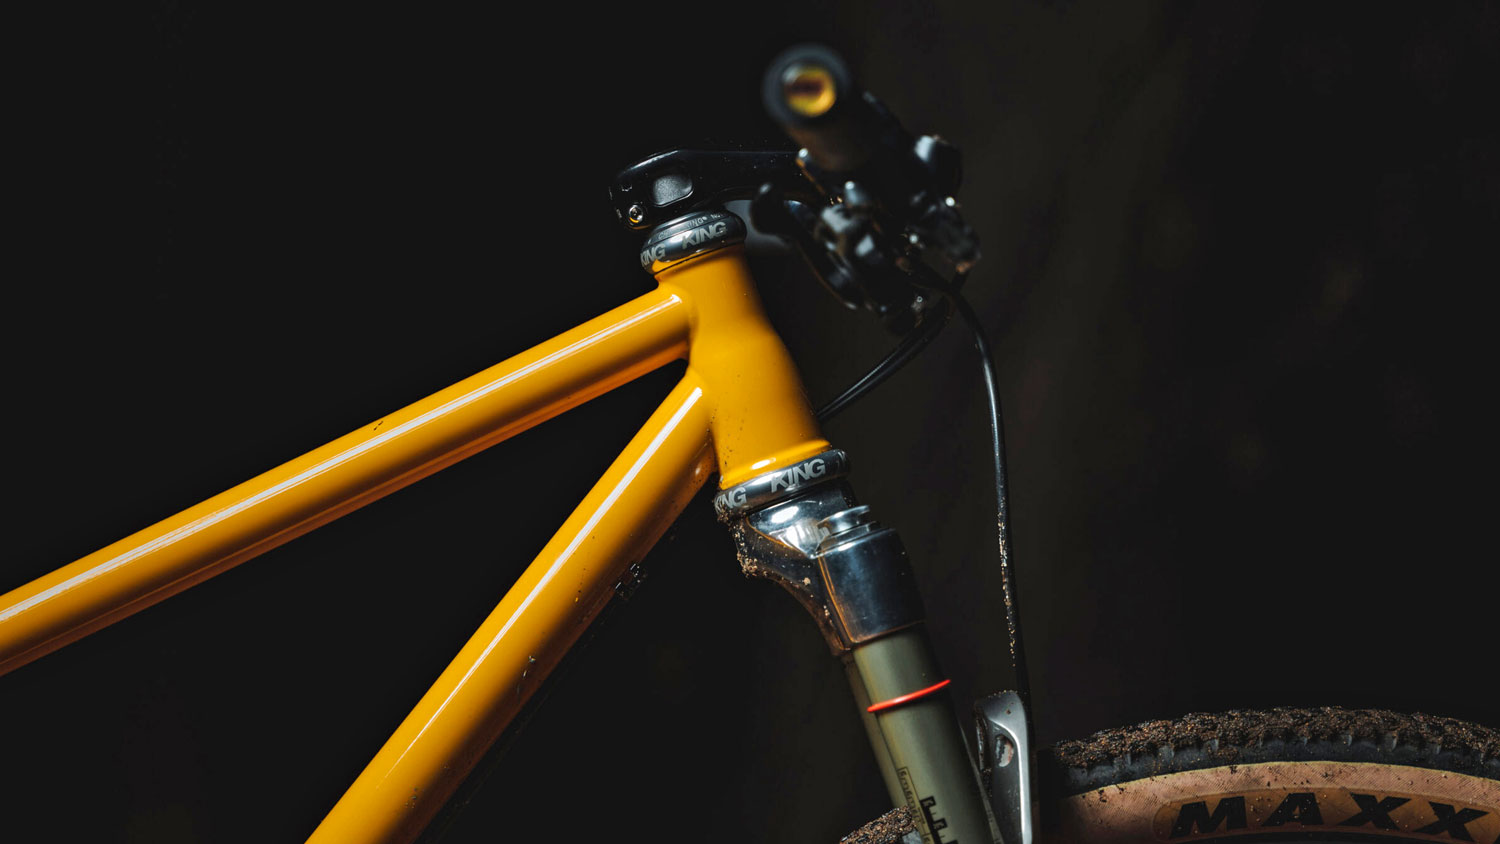 Sour Pasta Party steel XC hardtail mountain bike, tapered headtube